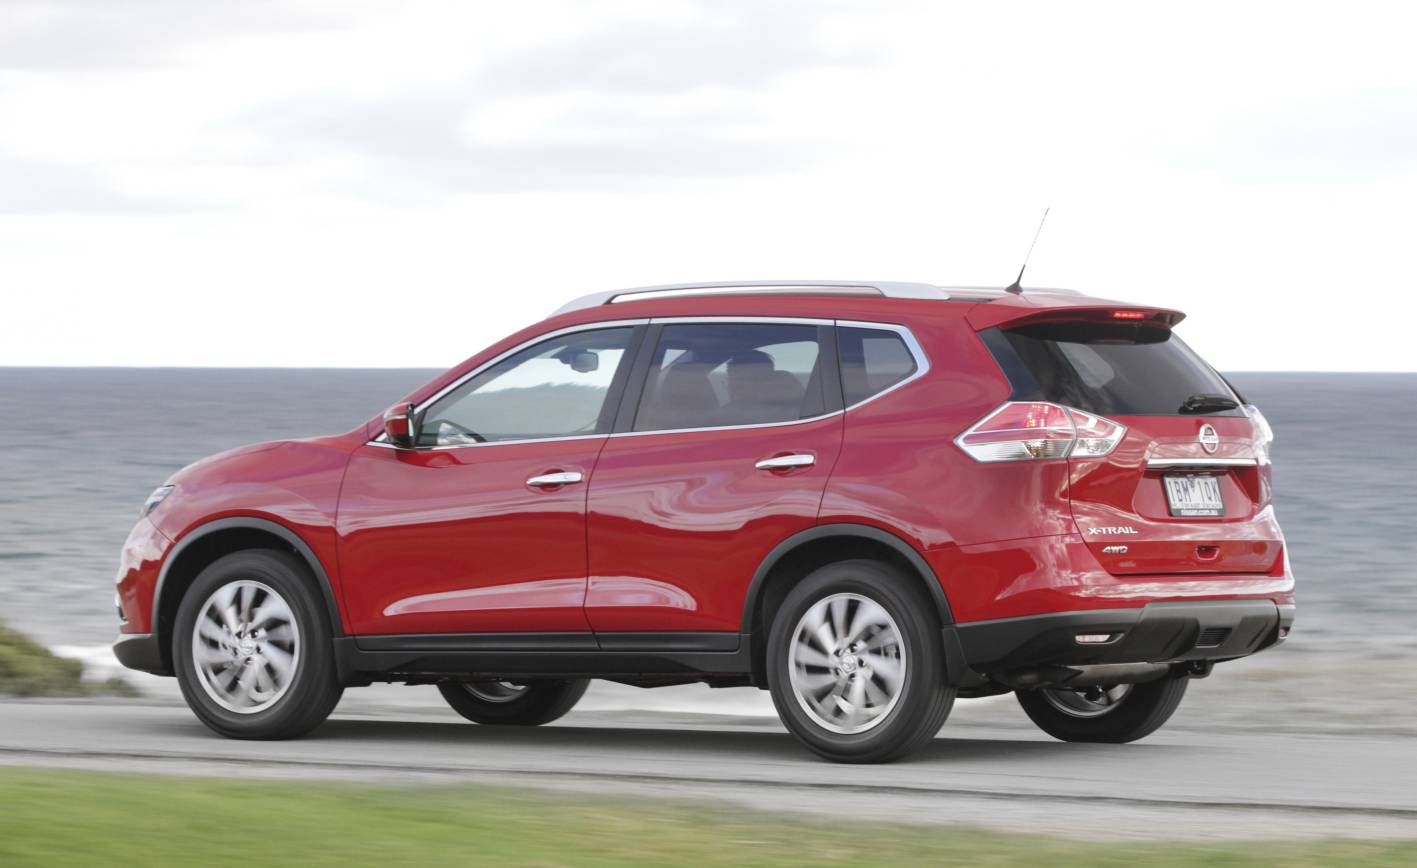 Nissan Cars - News: 2014 X-TRAIL pricing and specification ...